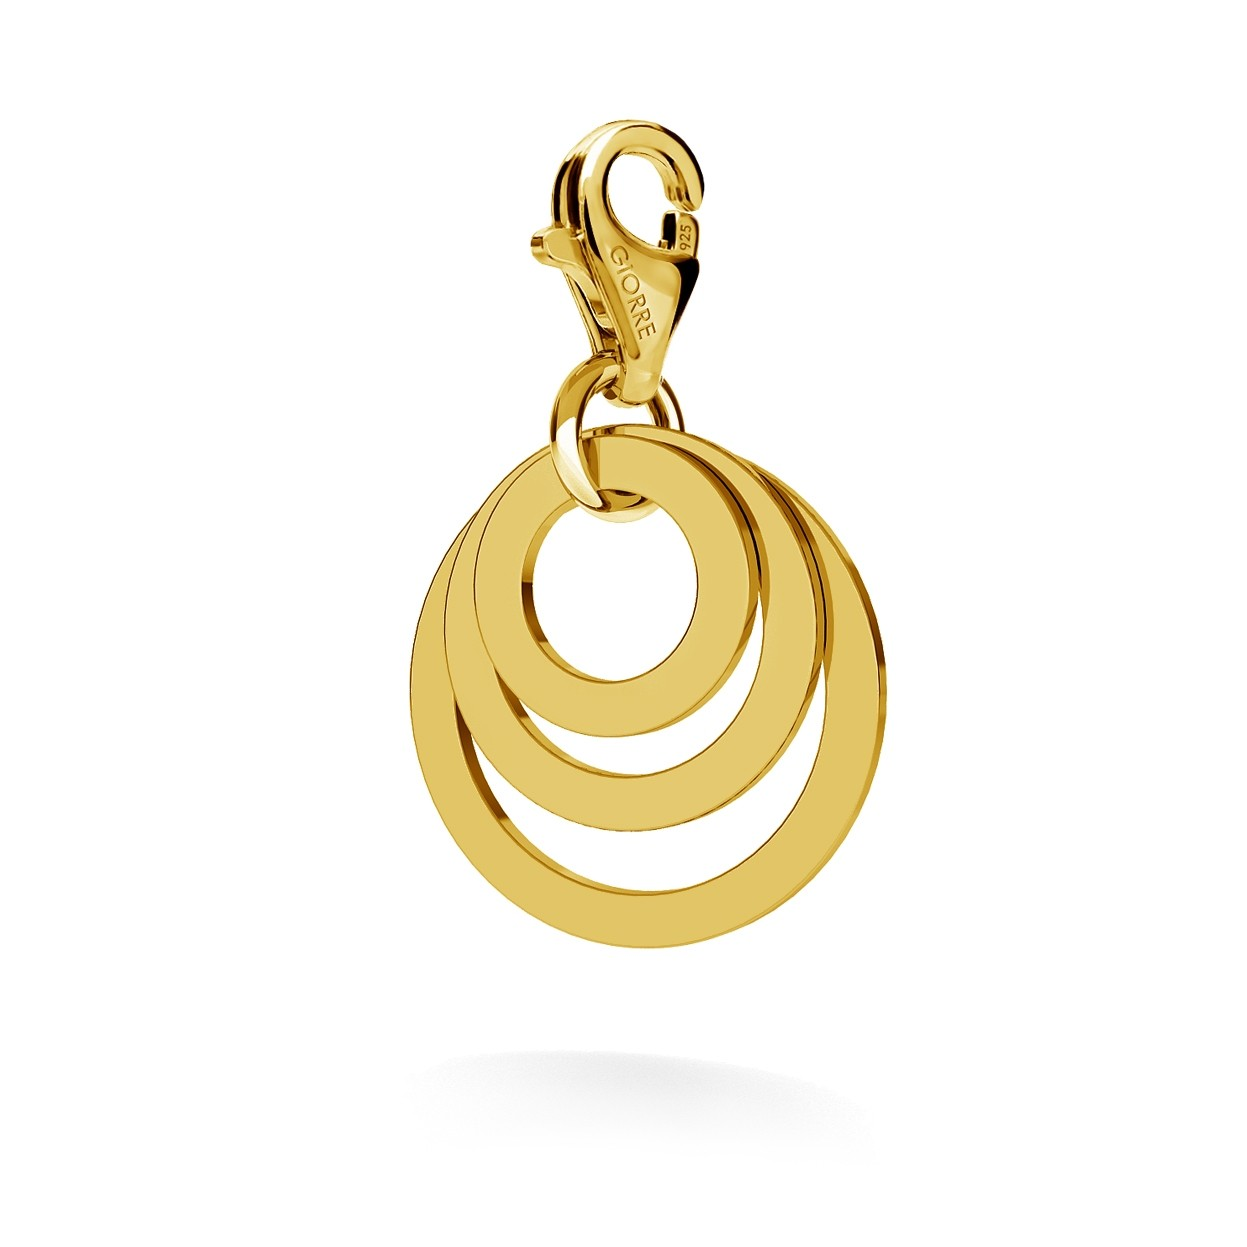 CHARM 44, TRIPLE RING WITH ENGRAVE, STERLING SILVER RHODIUM OR 24K GOLD PLATED